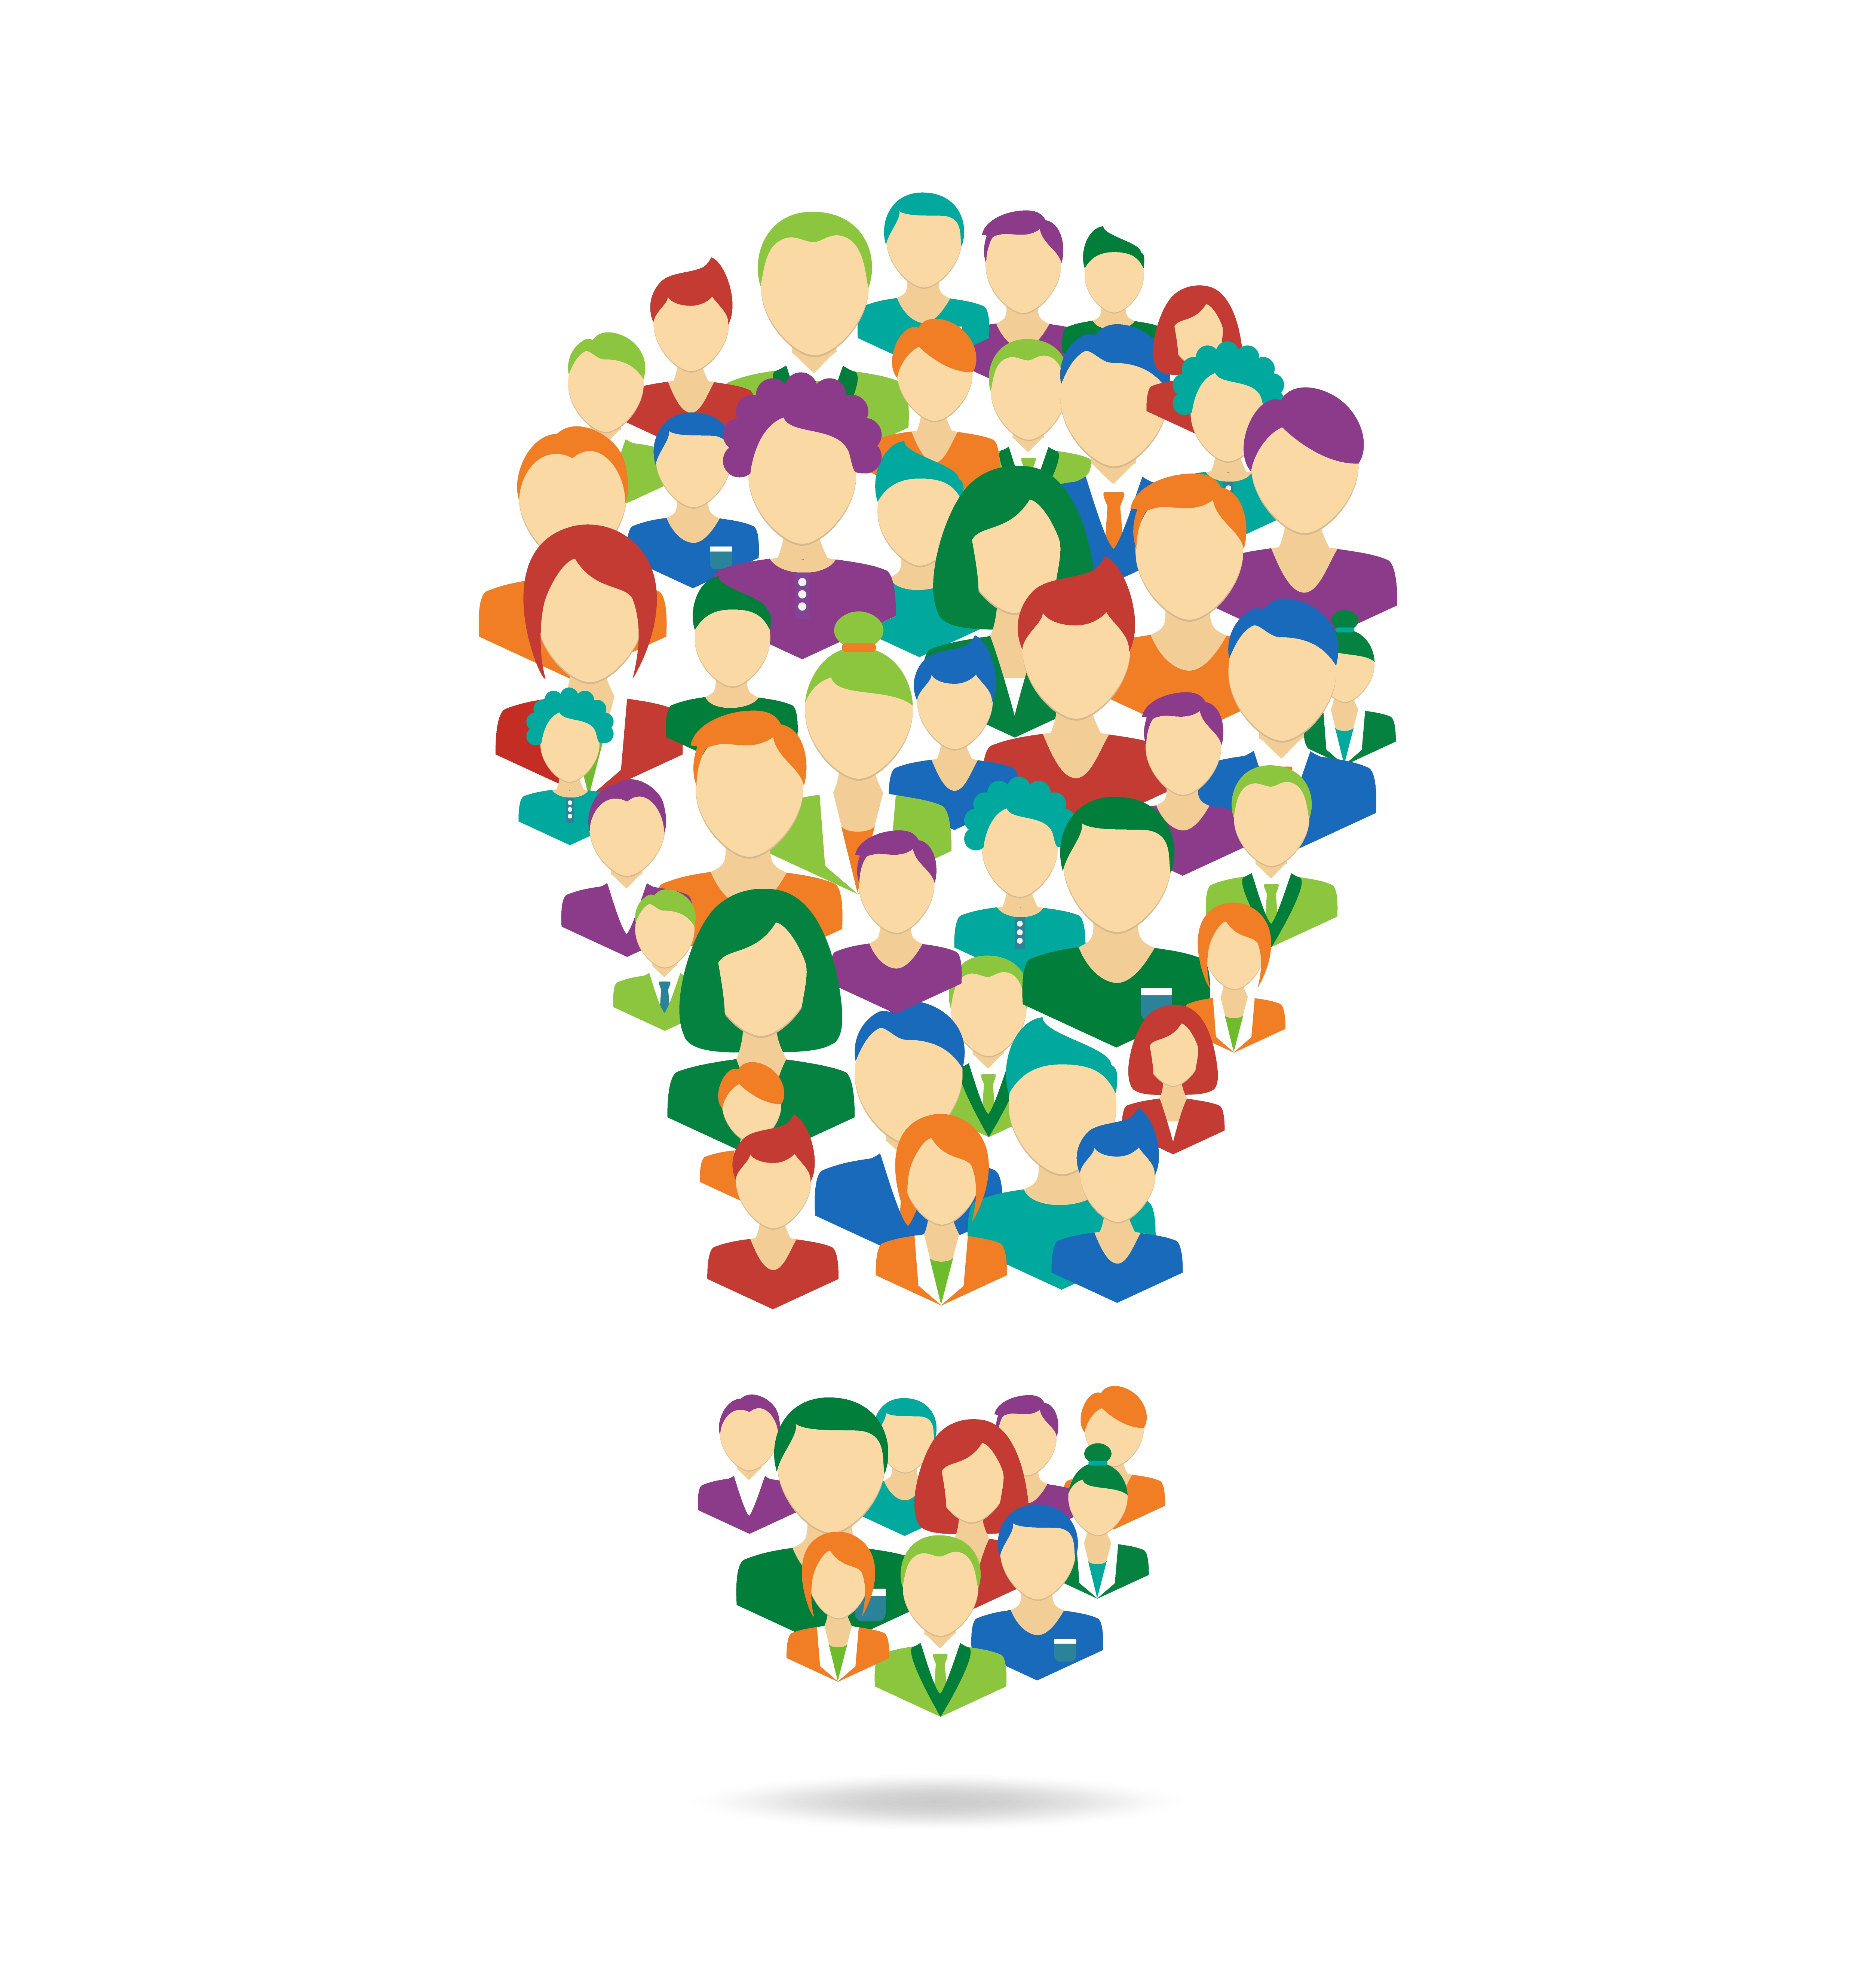 Evaluating Crowdsourcing - has it a bright future?